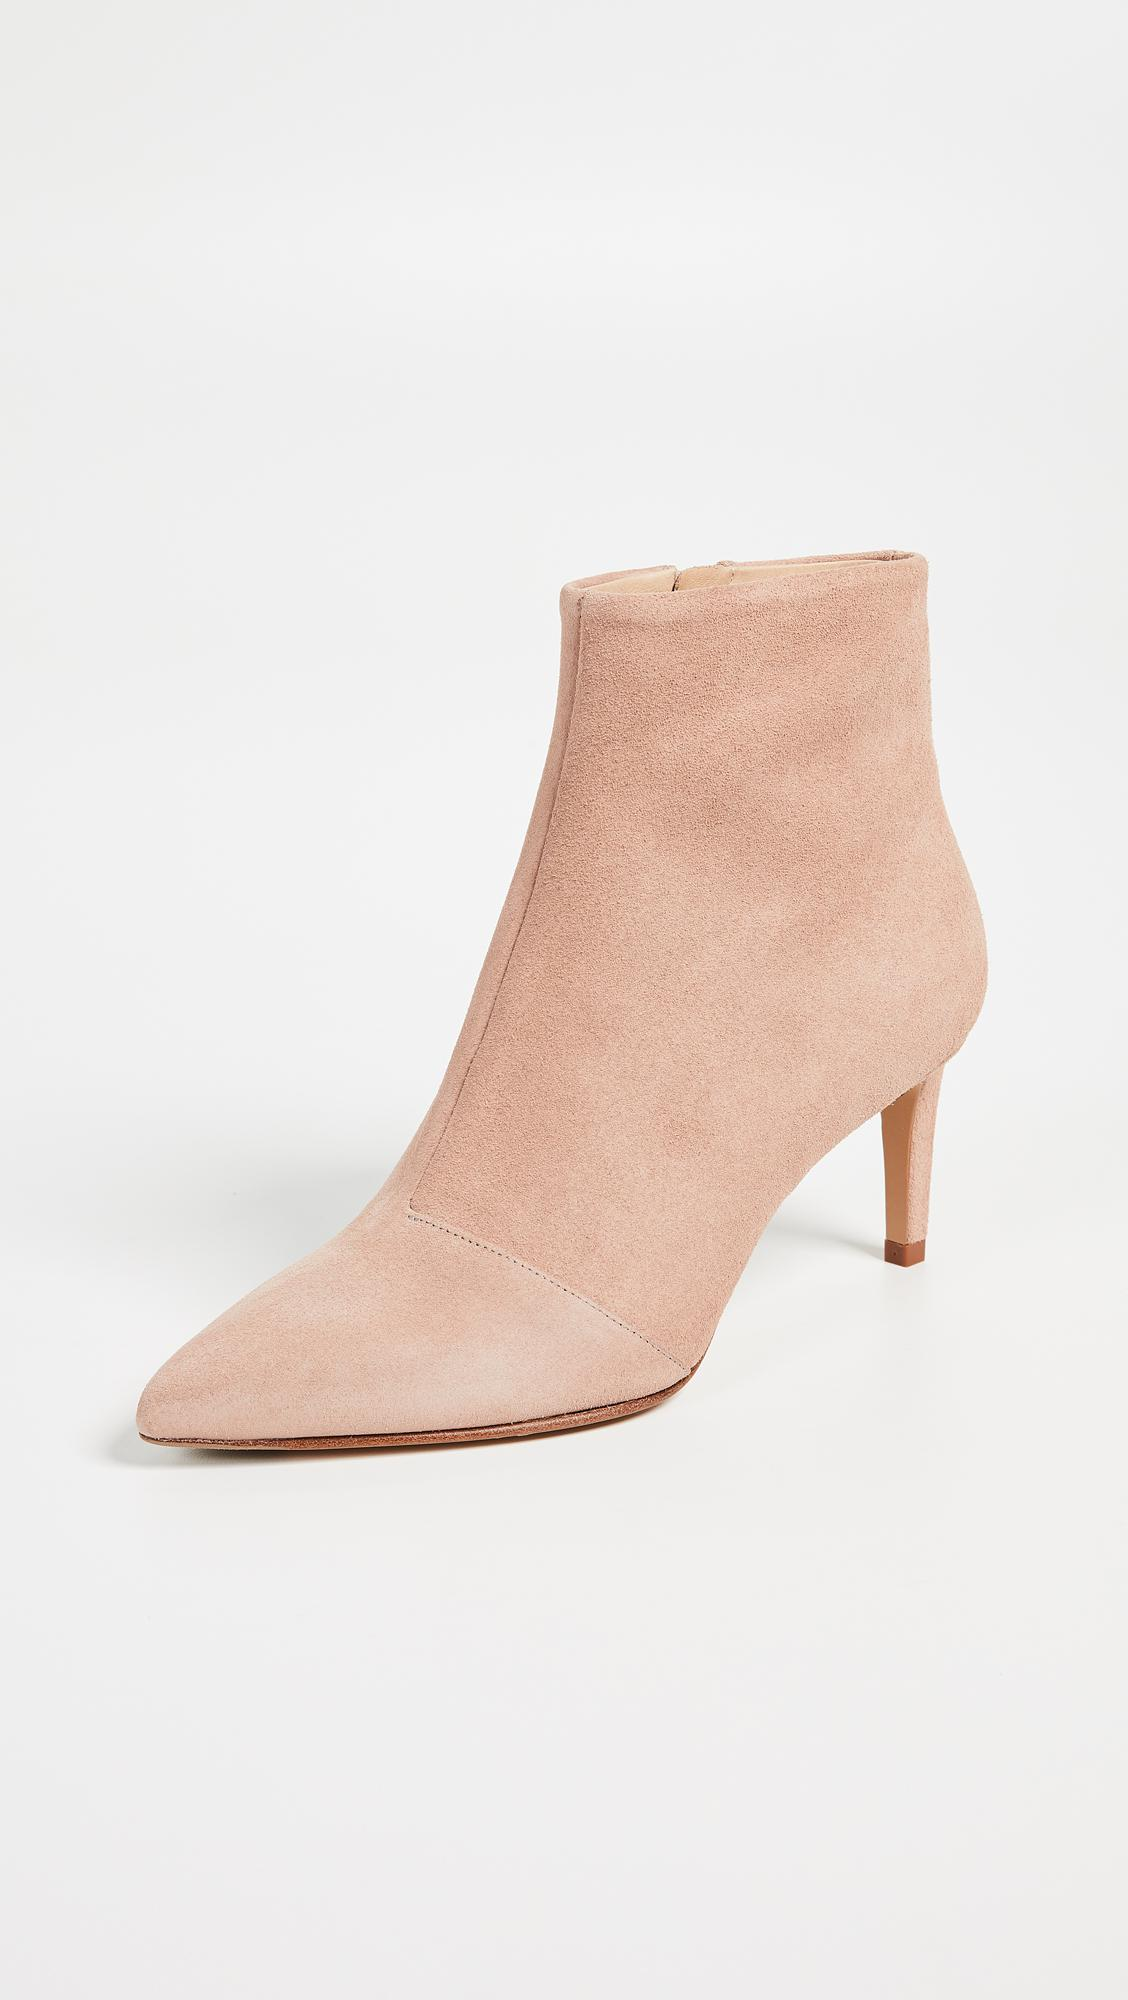 Rag & Bone Leather Beha Booties in Nude (Natural)